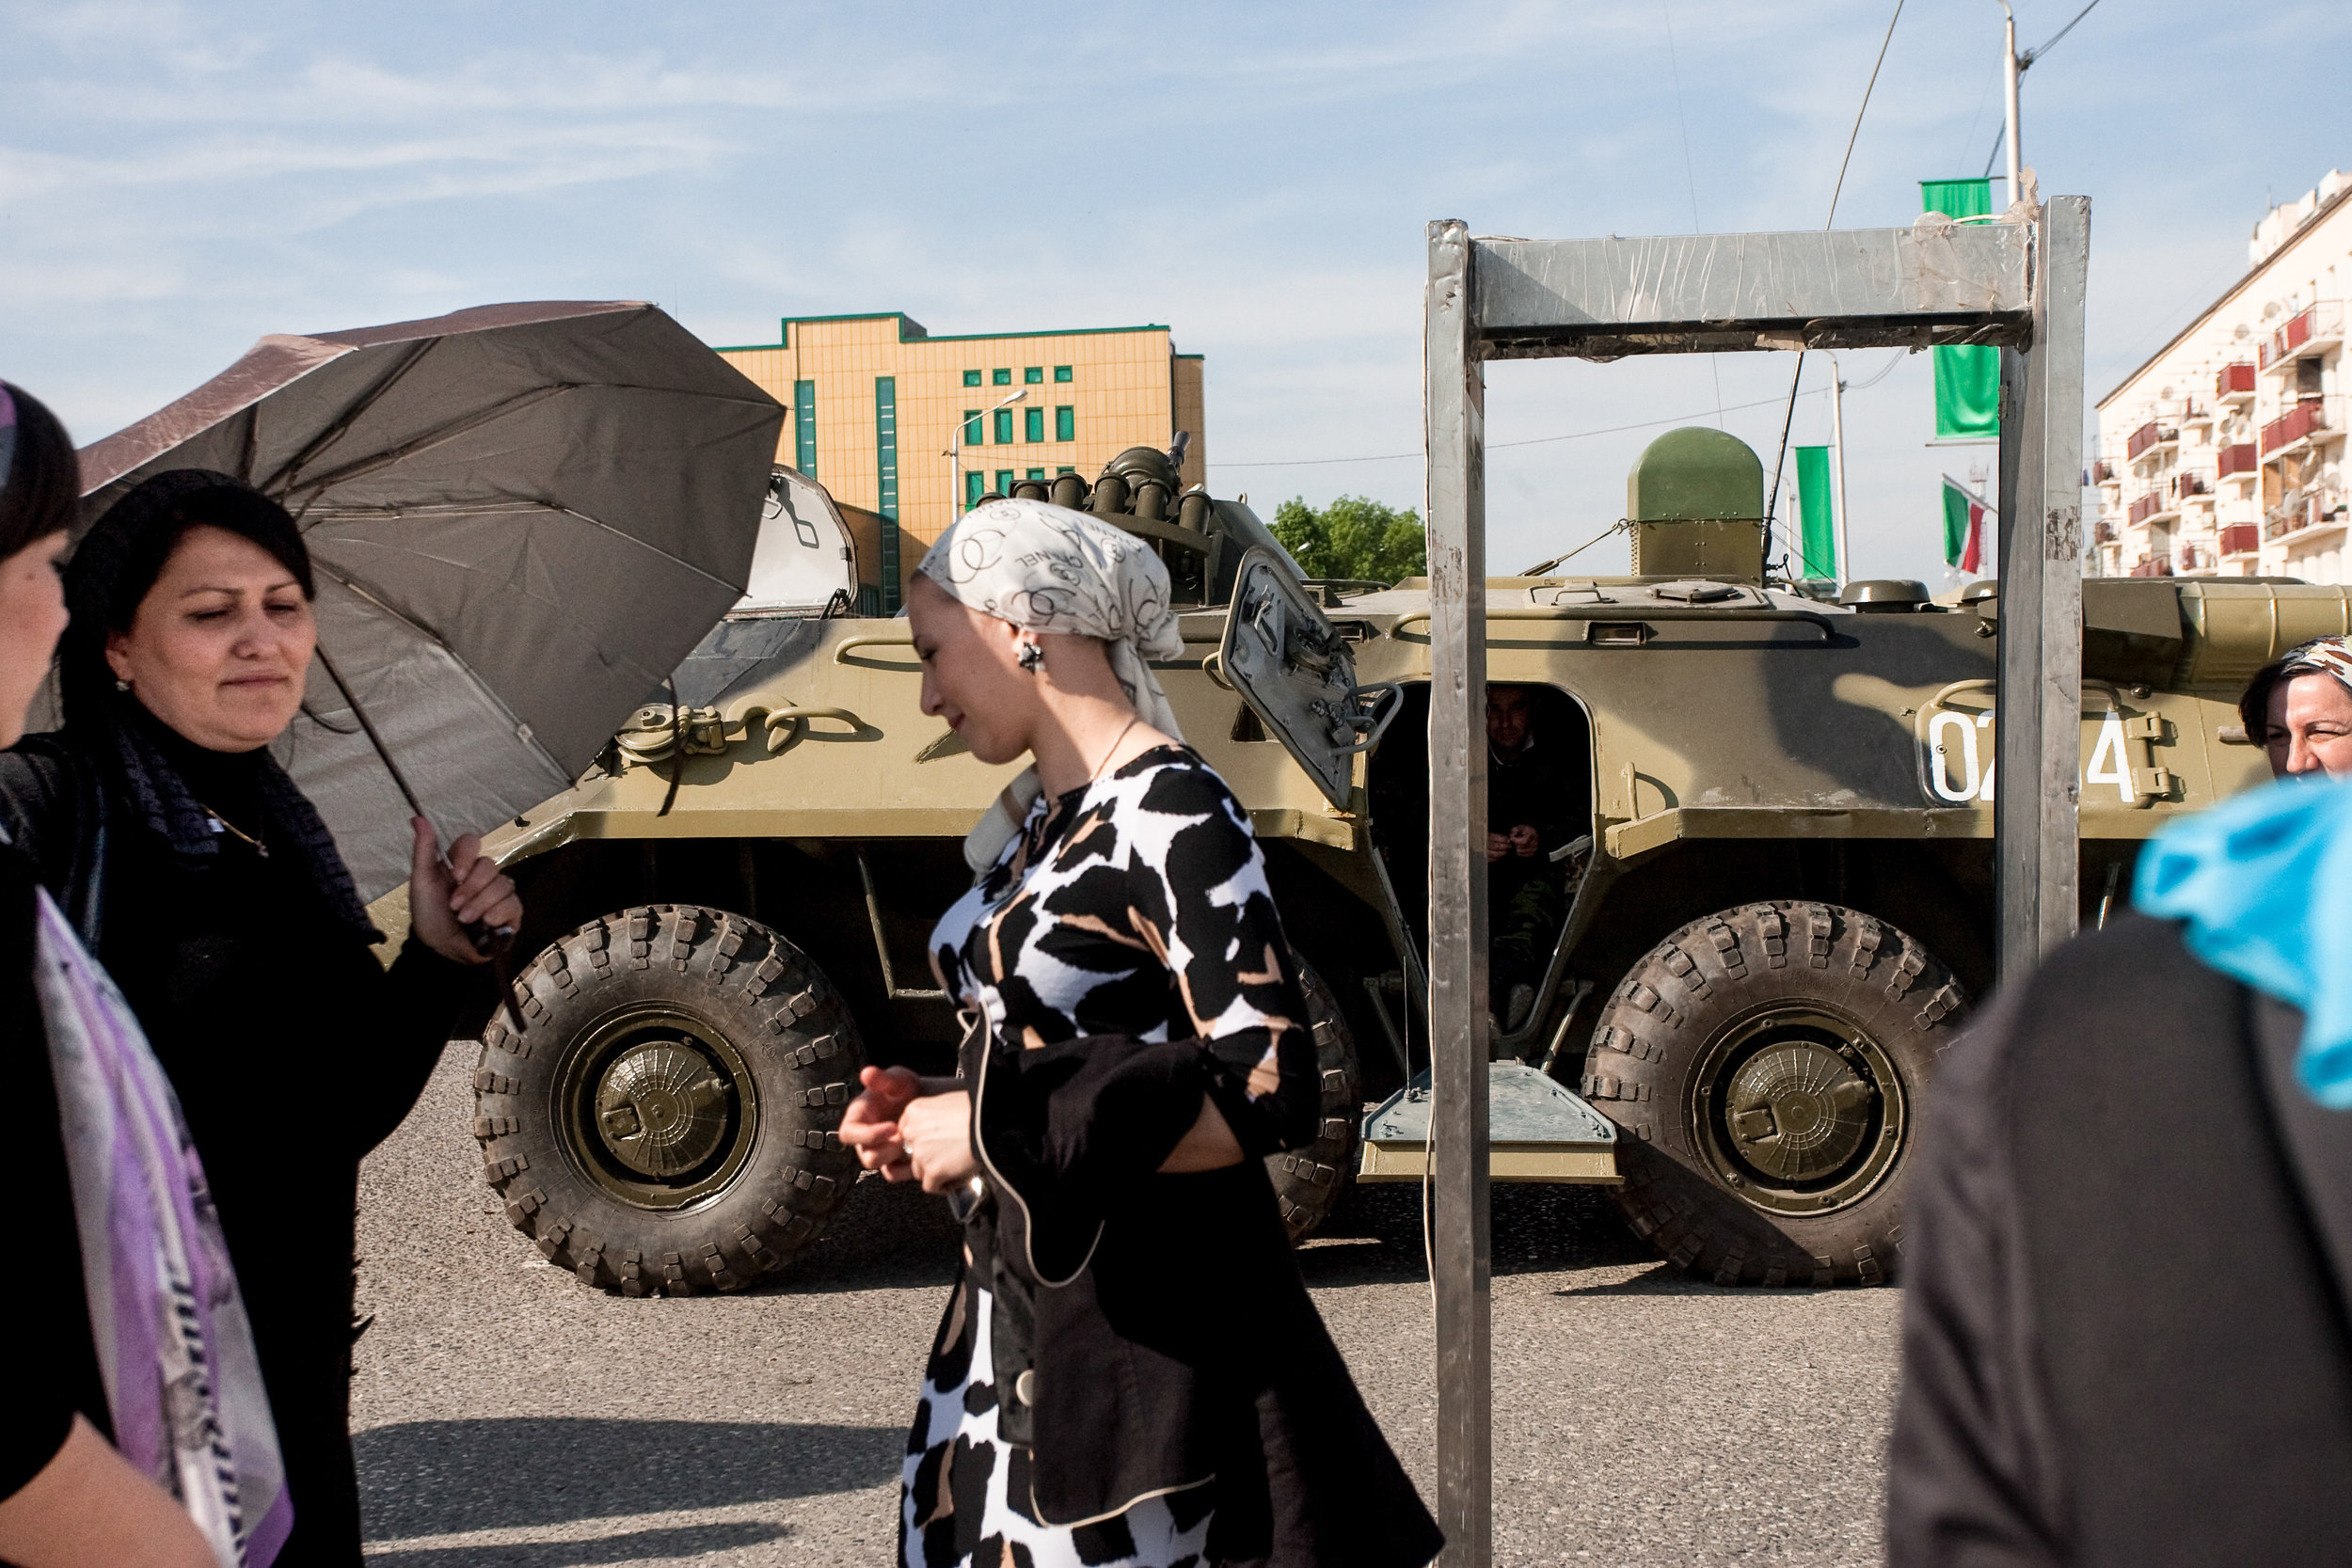 Russia, Chechnya, Grozny, 9 May 2010. Women waiting to check people's bags as they go through a metal detector at the boundary of central Grozny, just before a Victory Day parade marking the end of World War II.